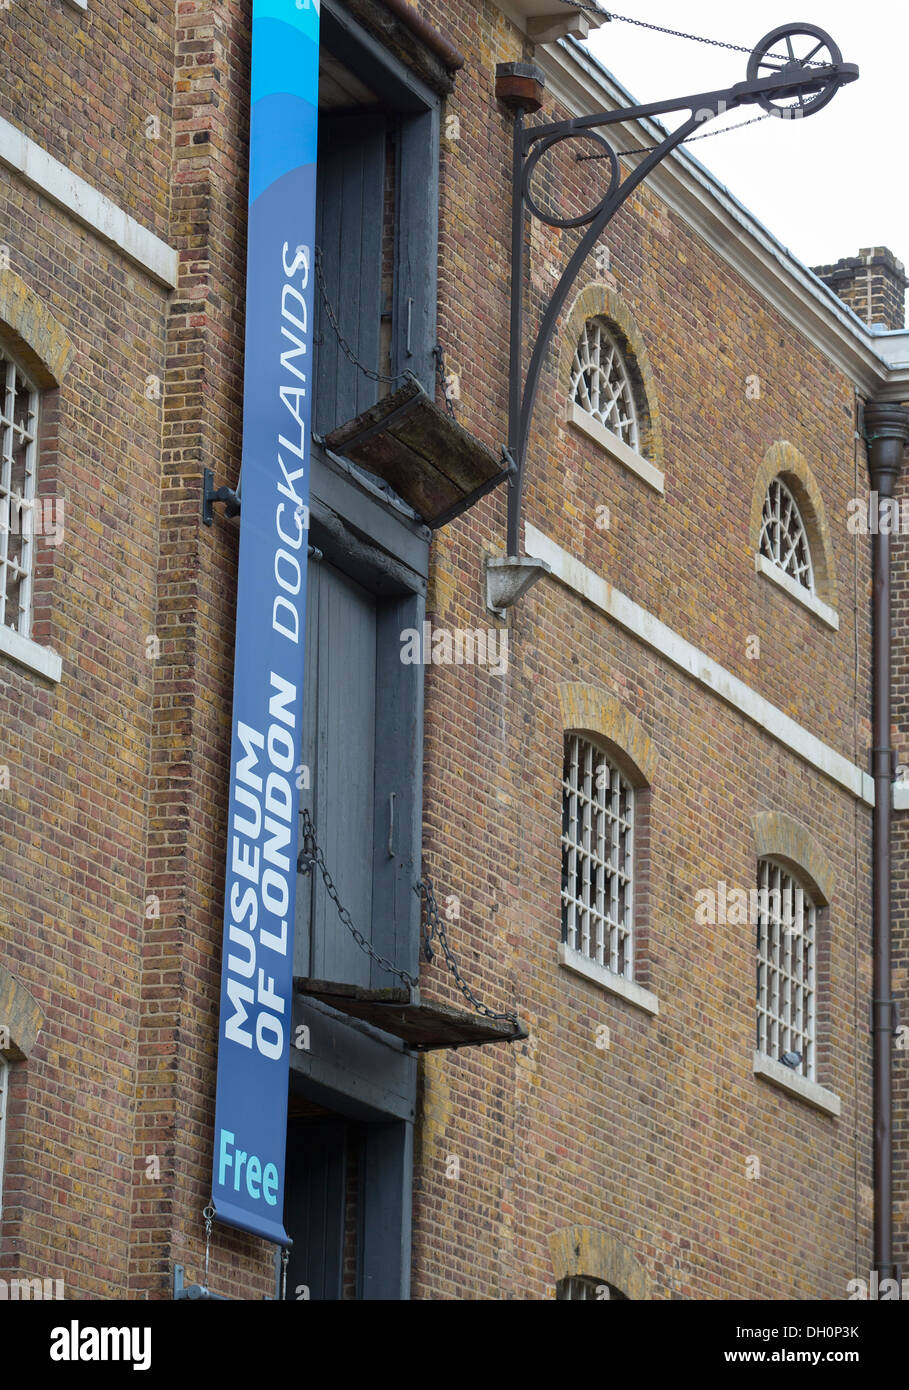 26/10/2013 Museum of London docklands, Canary Wharf, Docklands, London, England, UK - Stock Image